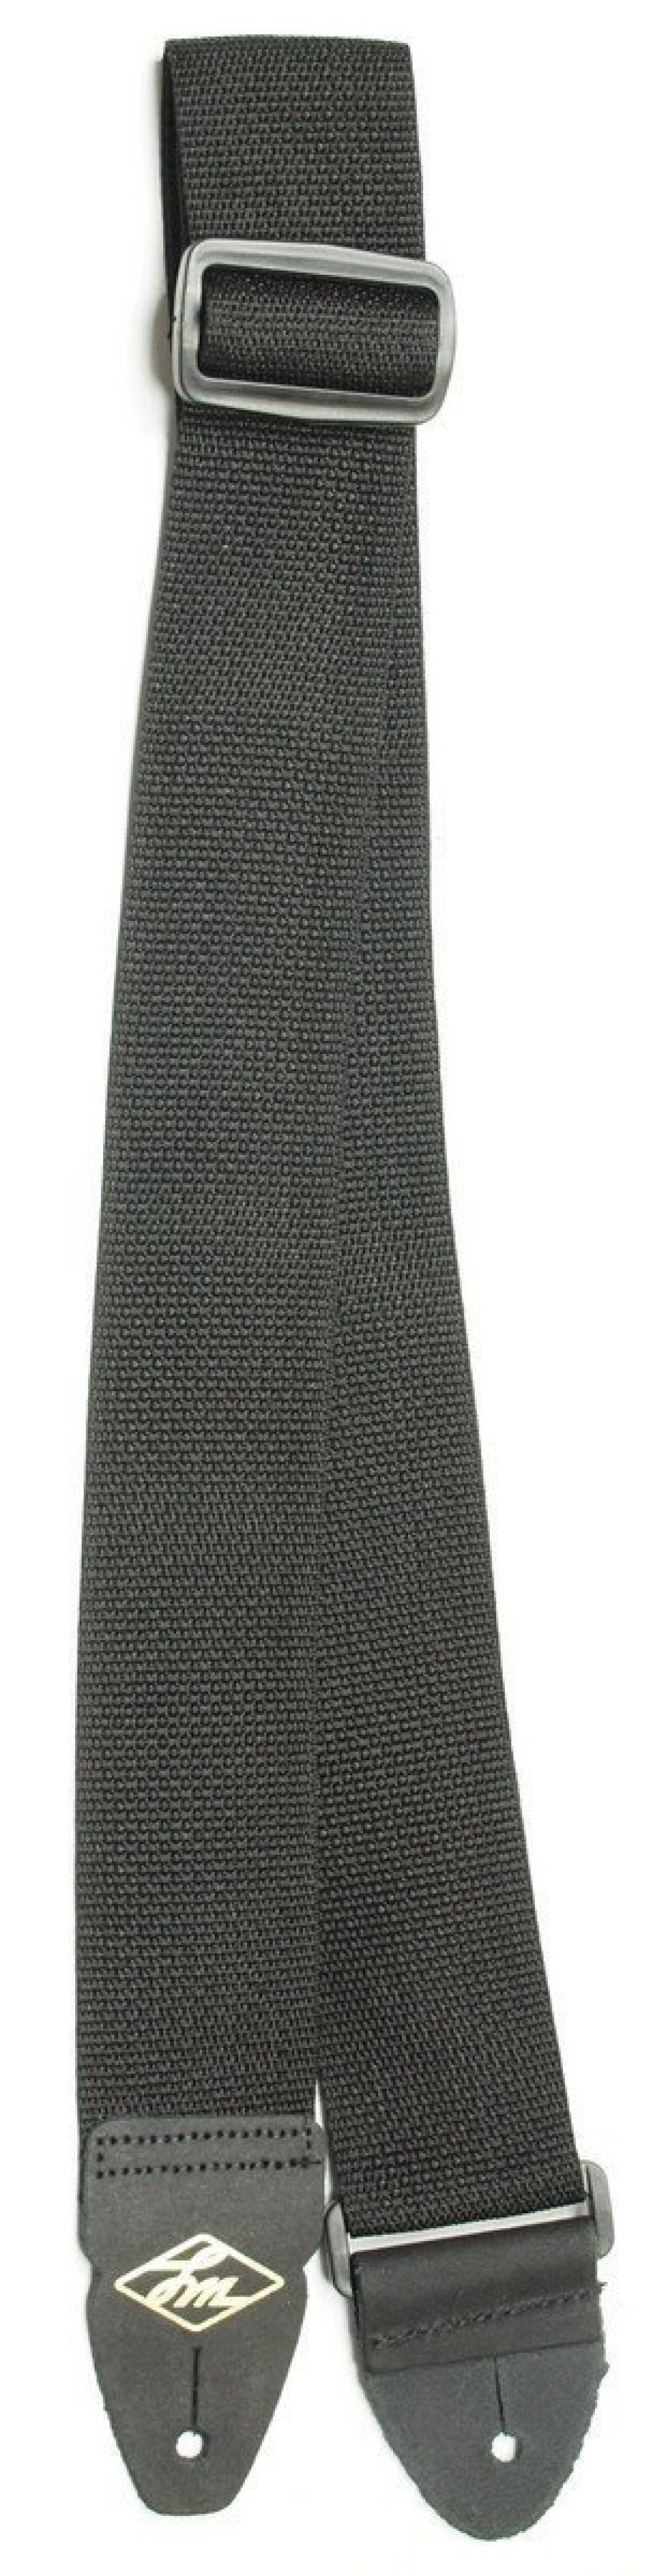 "LM Products 2"" Guitar Strap Black"